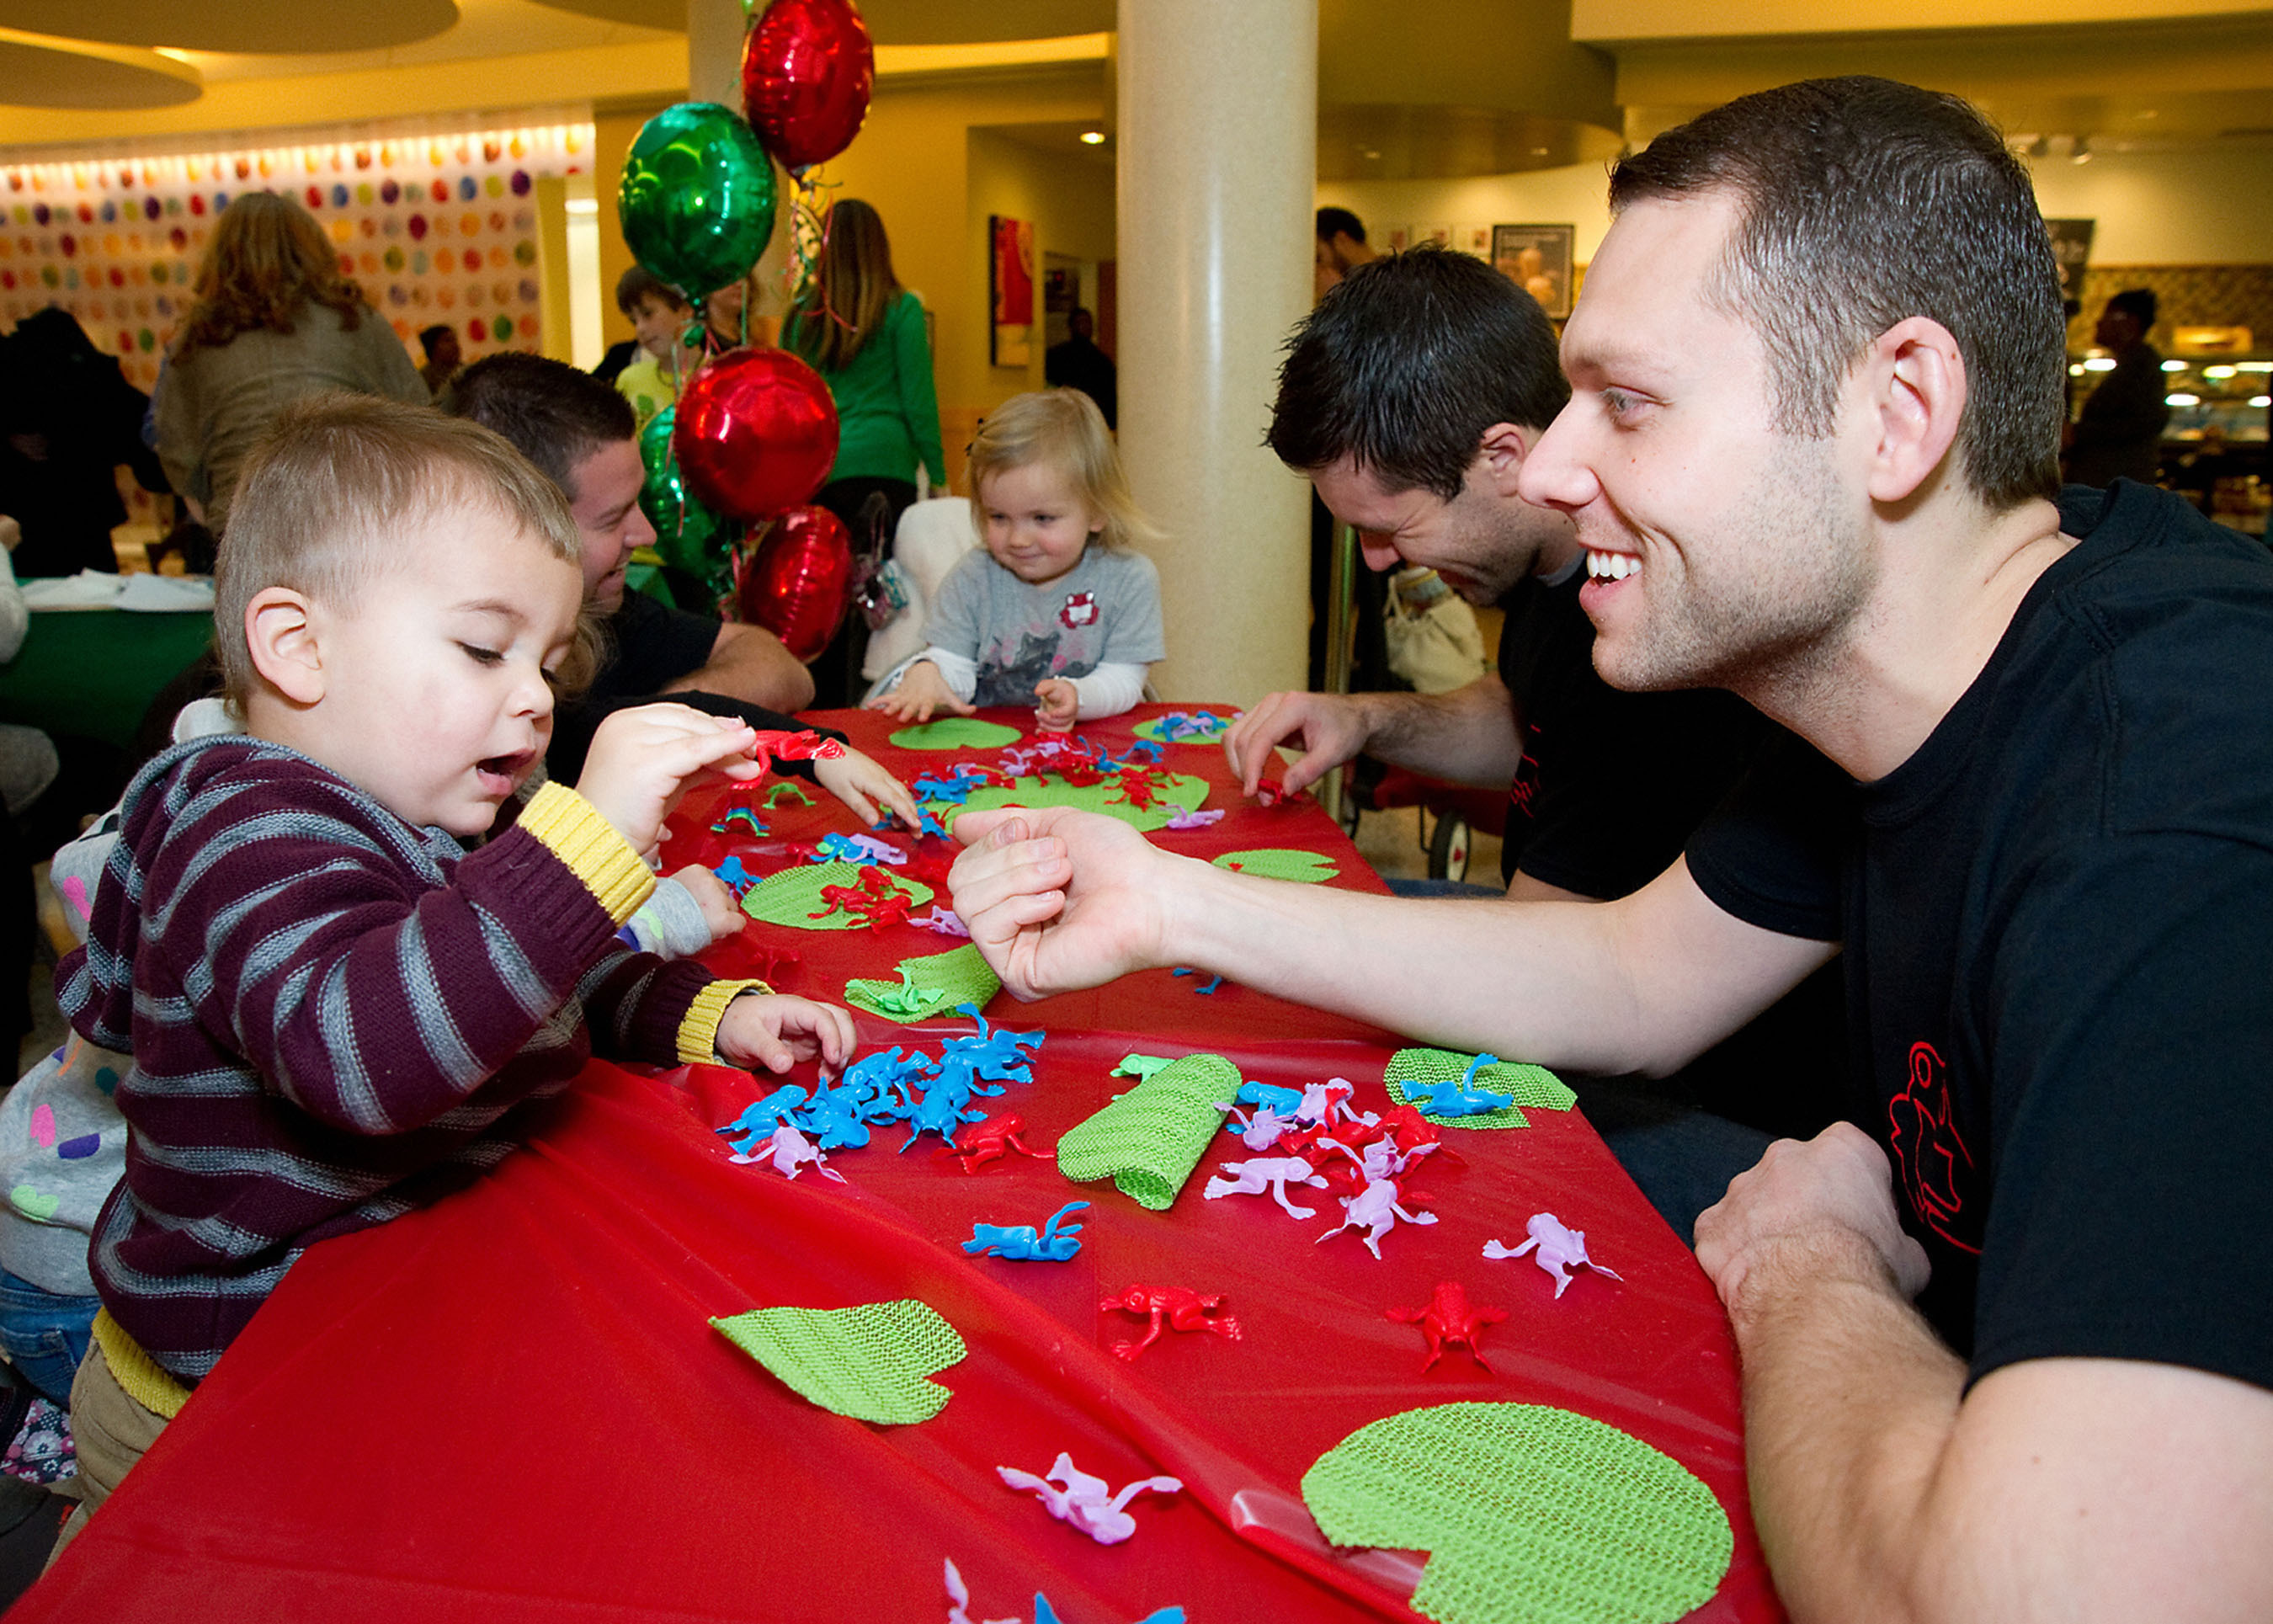 "Ryan Kunkel and Joe Reynolds, co-CEOs of Red Frog Events, interact with patients of St. Jude Children's Research Hospital after announcing their Chicago-based events company will raise $25 million towards the opening of the world's first Proton Radiation Therapy center solely for children, ""St. Jude Red Frog Events Proton Therapy Center"" which will be located on the hospital's campus in Memphis. Red Frog Events is best known for producing large-scale events like Warrior Dash, Great Urban Race and Firefly Music Festival.  (PRNewsFoto/Red Frog Events)"